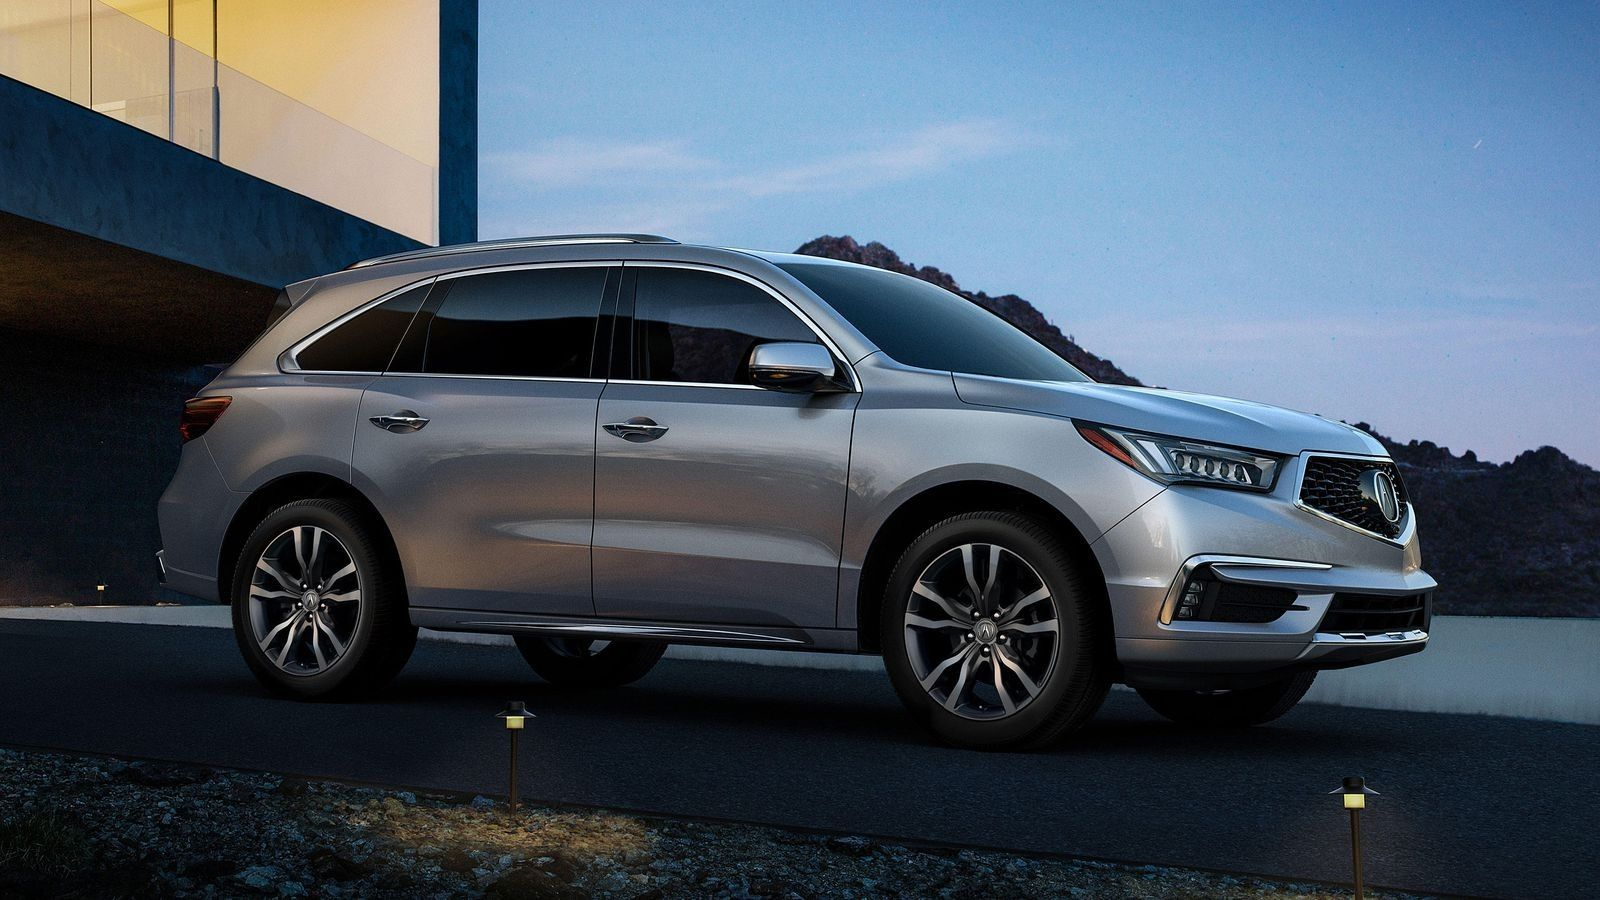 2019 Acura Mdx Picture, Release date, and Review Acura